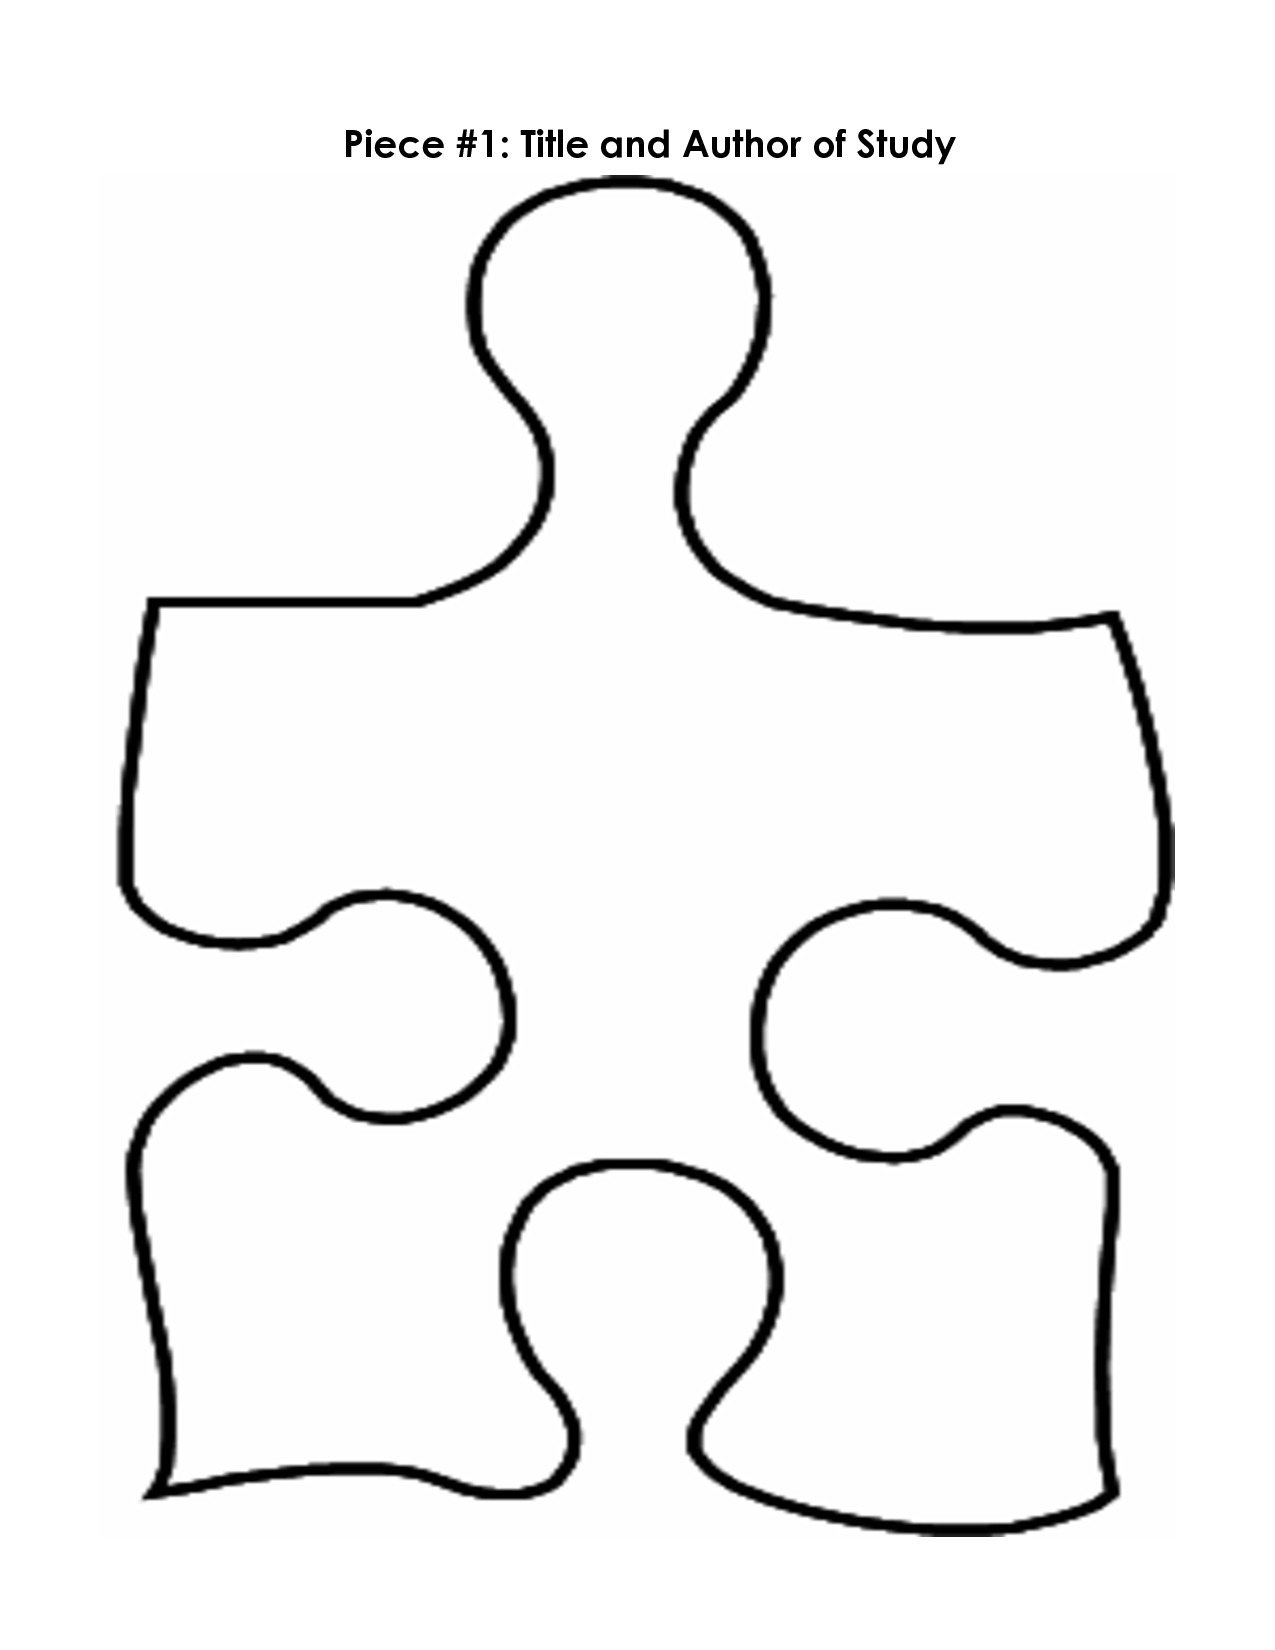 Free Puzzle Pieces Template, Download Free Clip Art, Free Clip Art - Printable Colored Puzzle Pieces